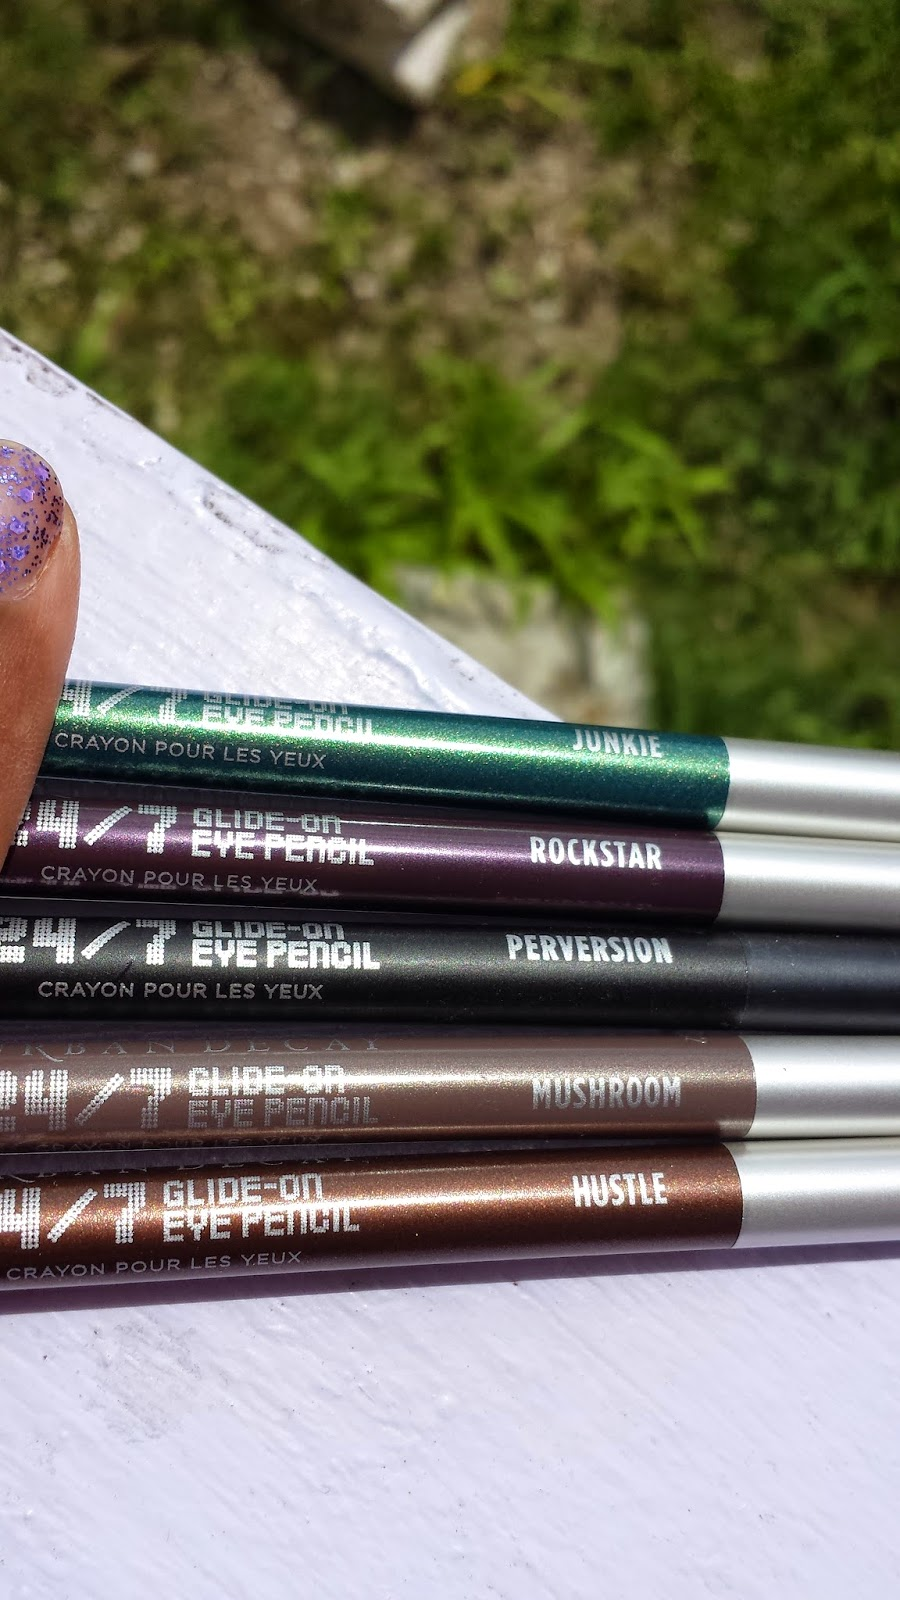 Urban Decay 24/7 Glide-On Eye Pencils - www.modenmakeup.com